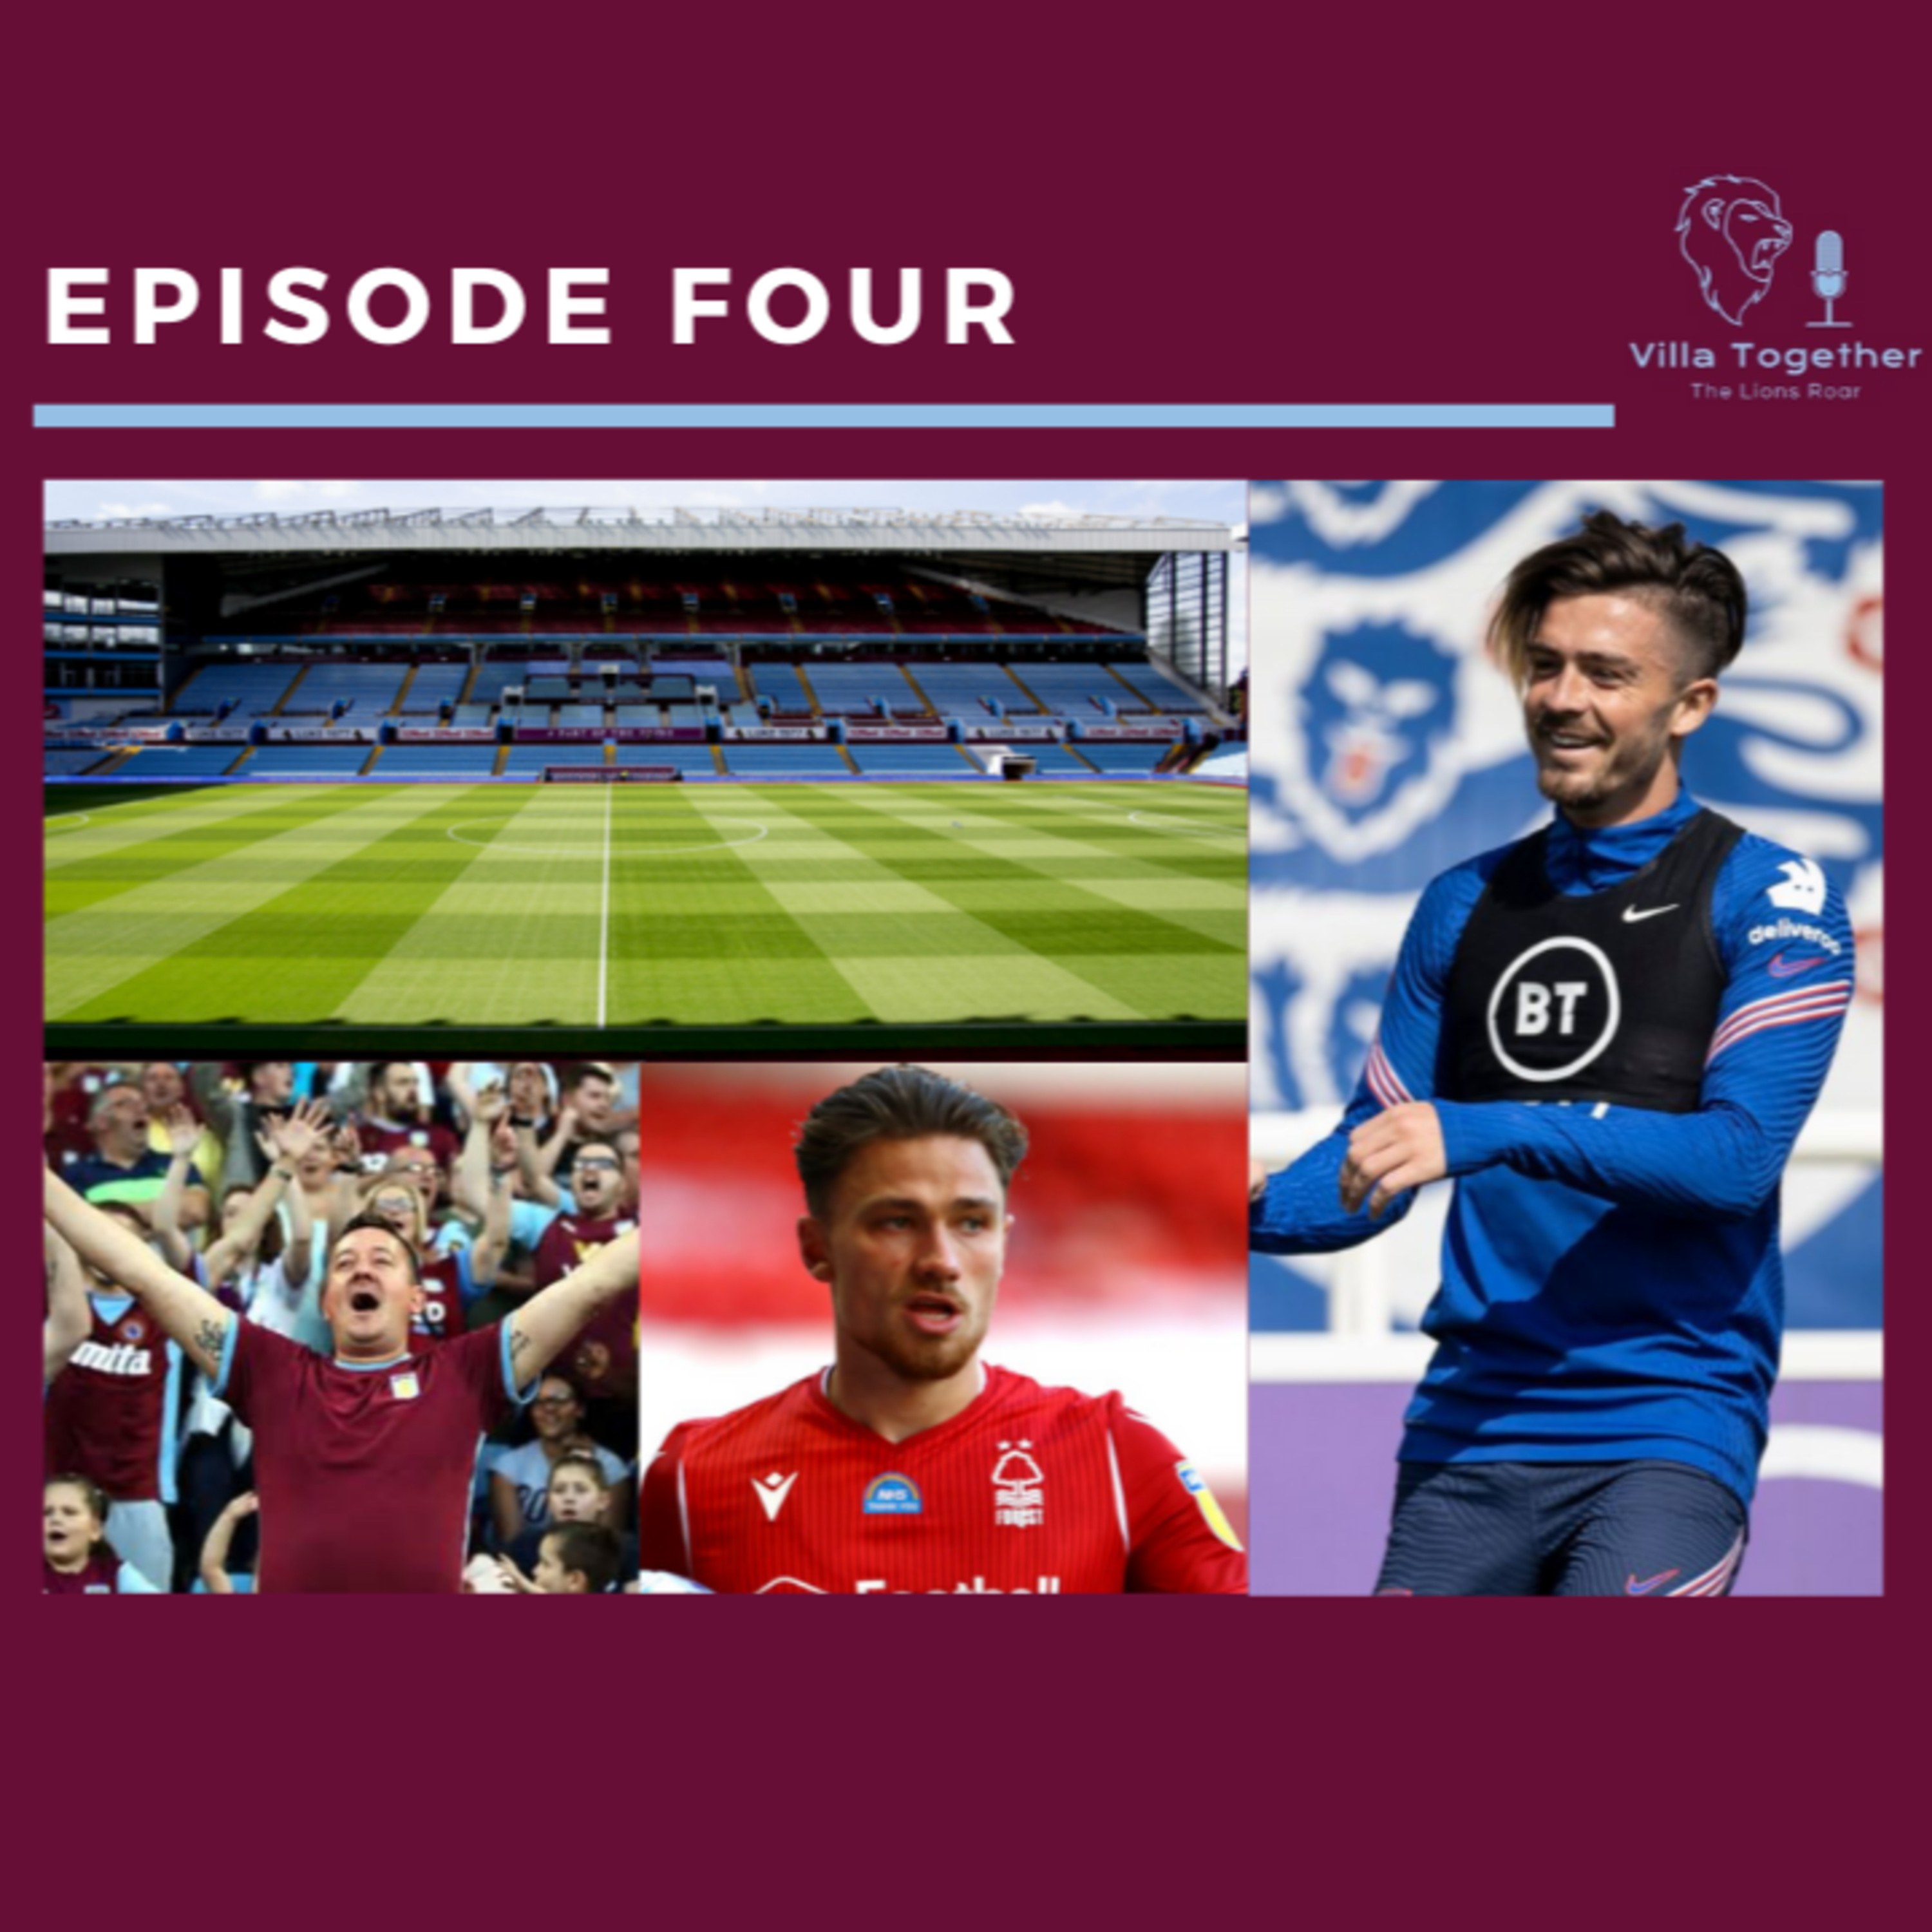 Villa Together - The Lions Roar Podcast (Aston Villa Podcast) Episode Four